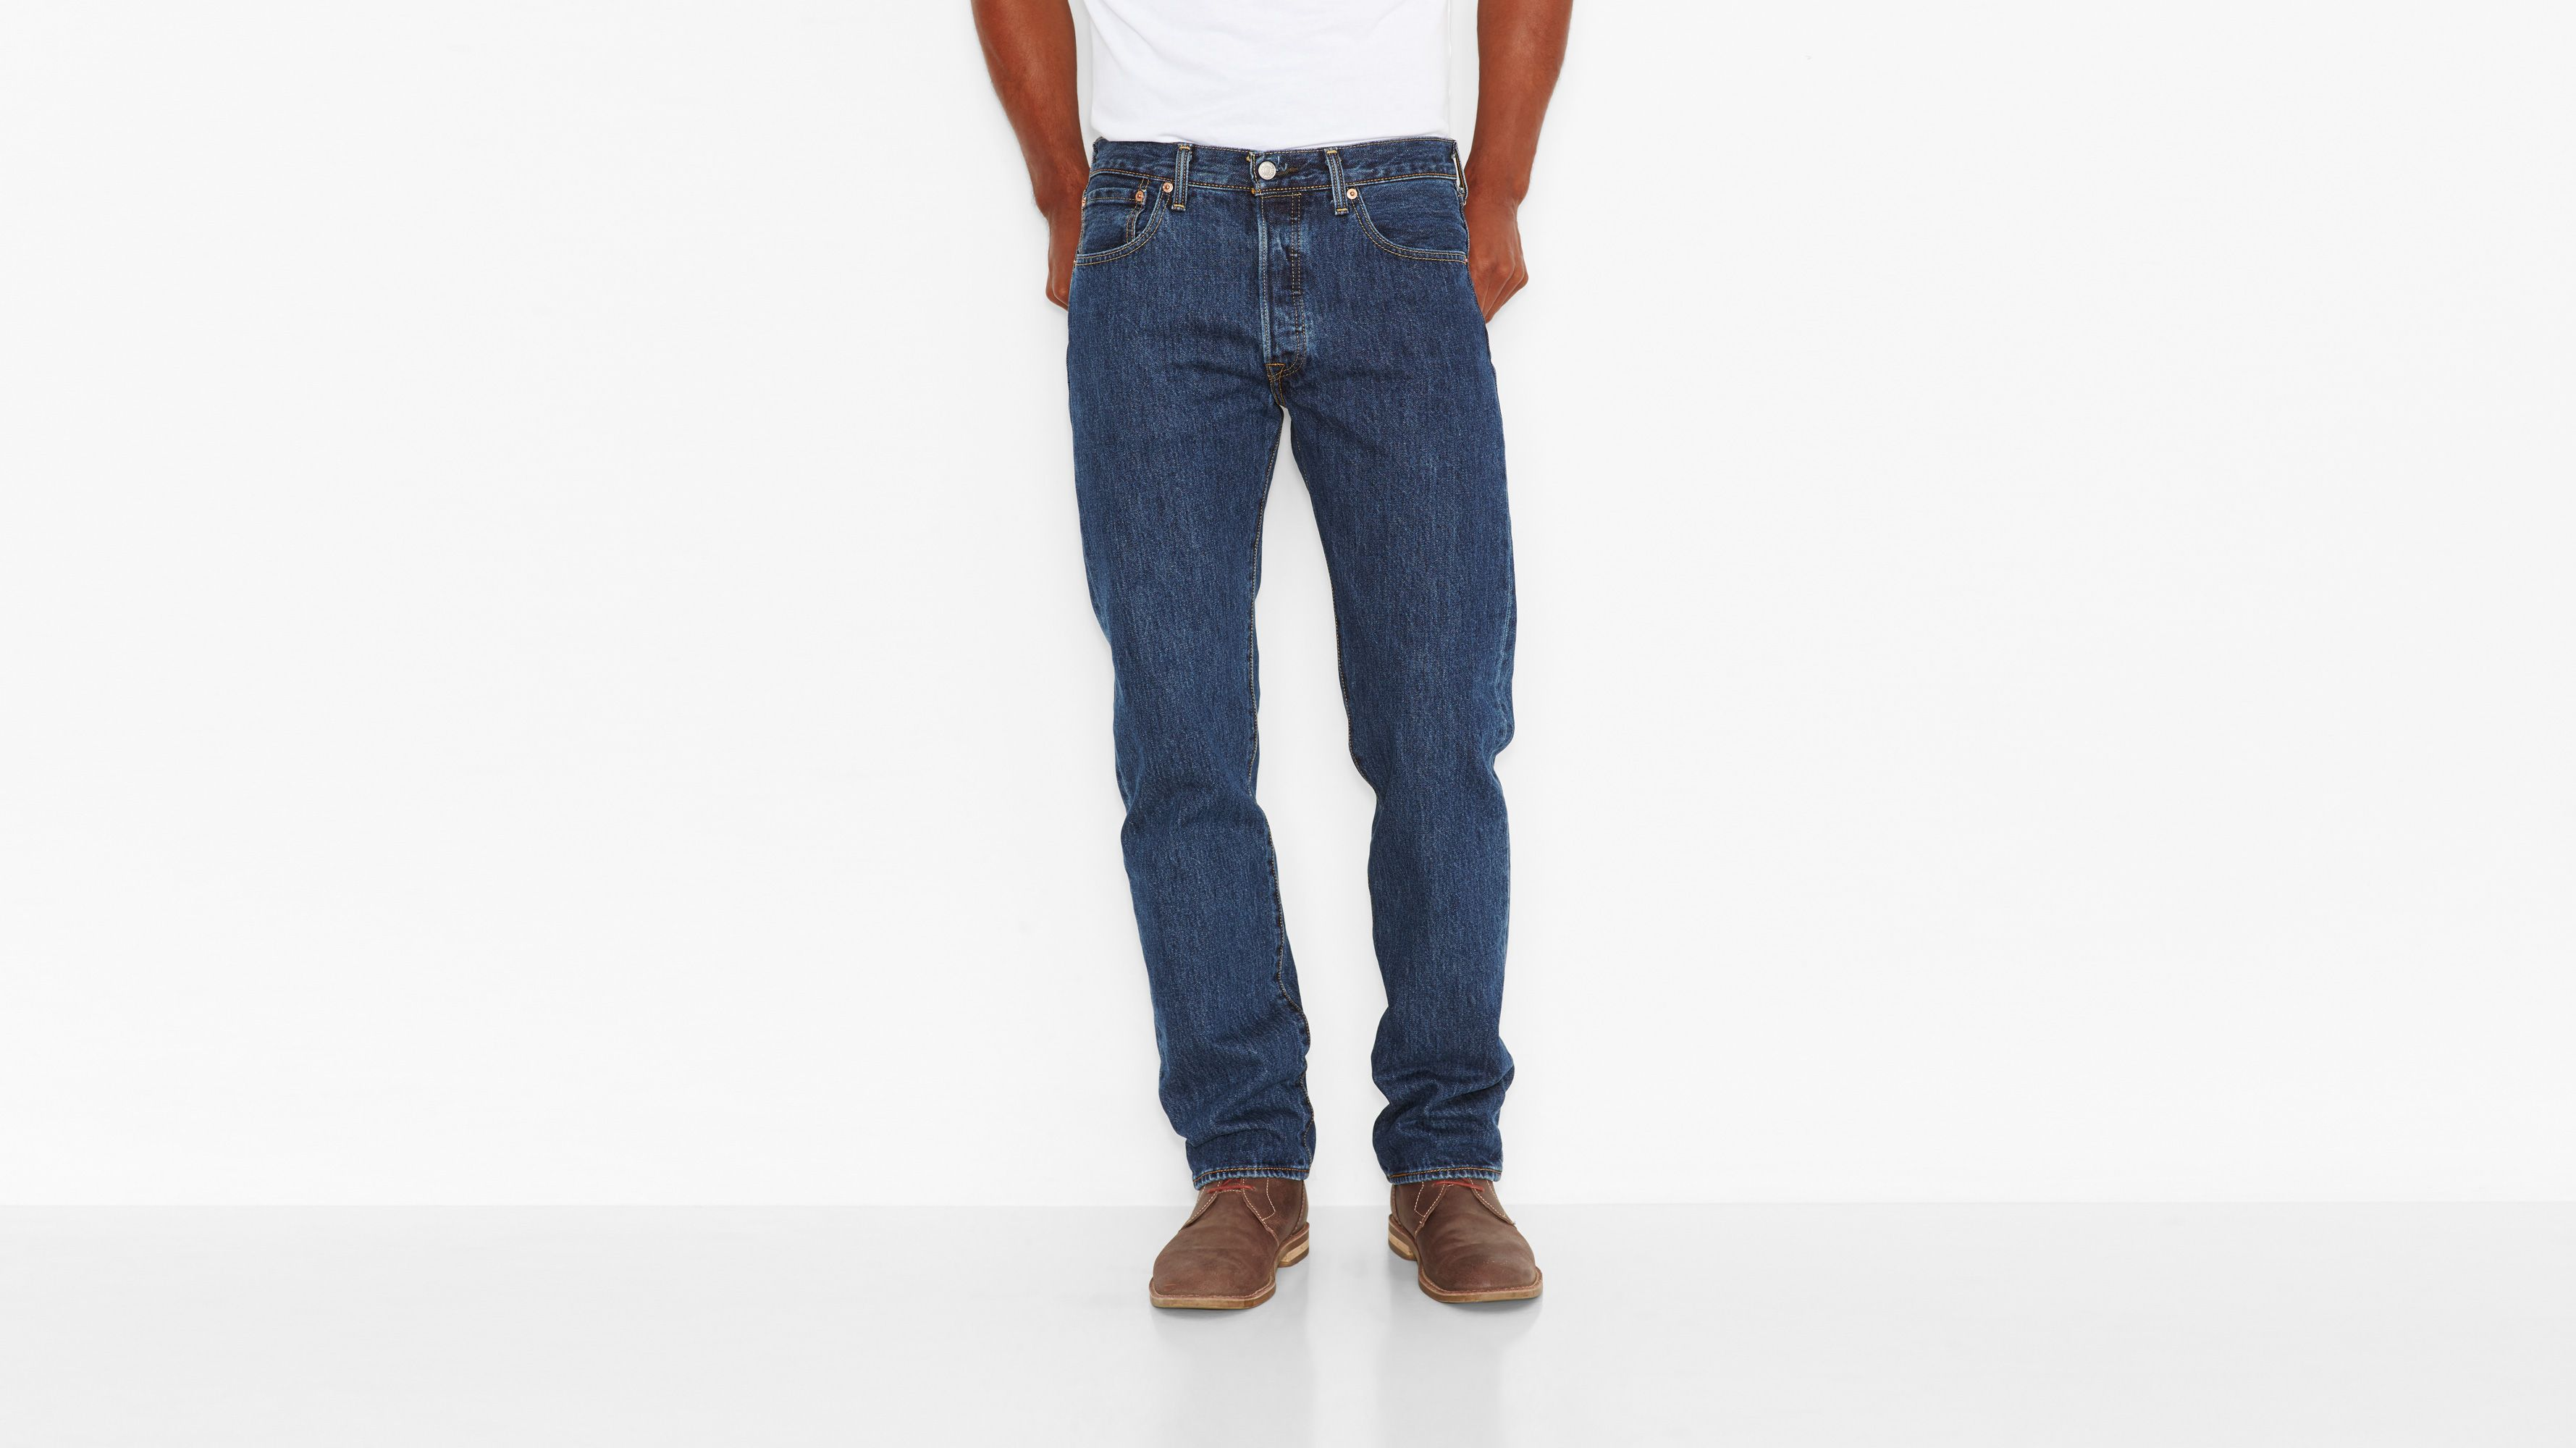 501® Original Fit Jeans (Big & Tall) - Dark Stonewash